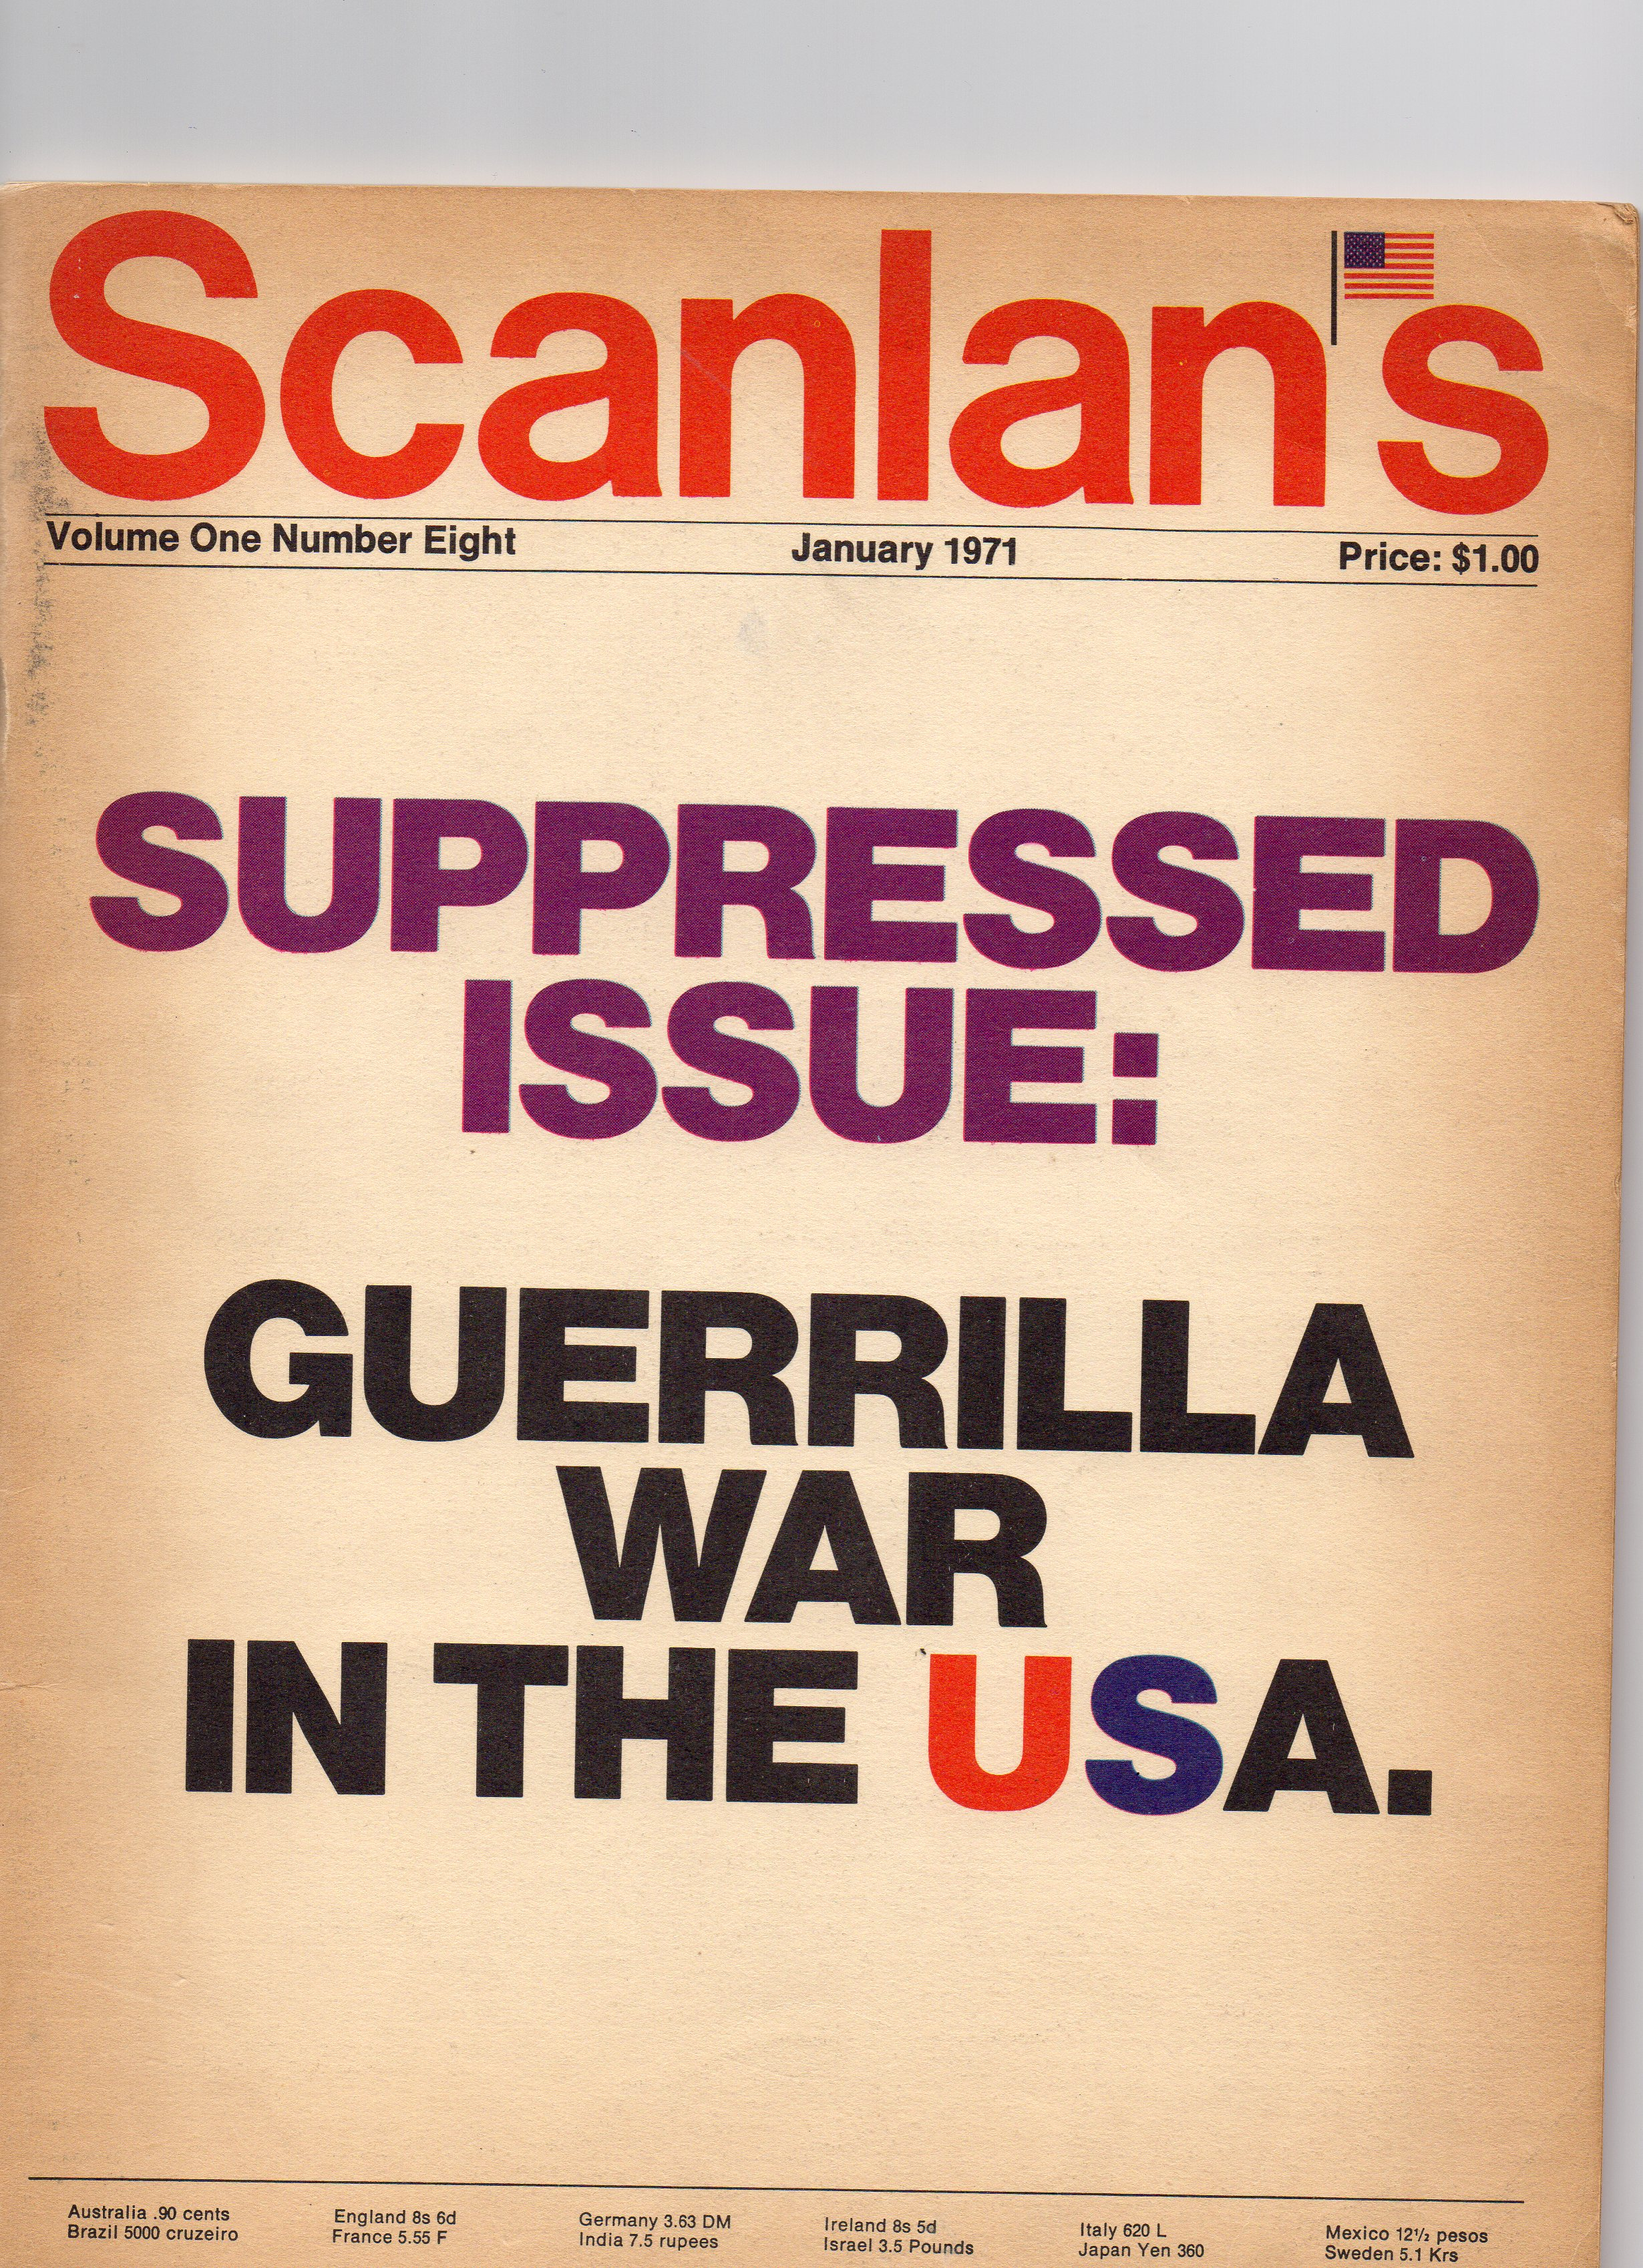 "Scanlan's Monthly 8. This was the last and mostly despicable issue of Scanlan's in which I had no hand in creating although I was there at the time. The editors explained the date thusly: ""This issue, Volume 1, No. 8, is now January 1971, and will appear on the newsstands in early December. Our last issue, Volume 1, No. 7, was dated September and was on newsstands during September. All subscribers will receive twelve full issues during the term of their subscription."" Subscribers ate their hearts out. The magazine folded and I was out of work. From my personal collection."